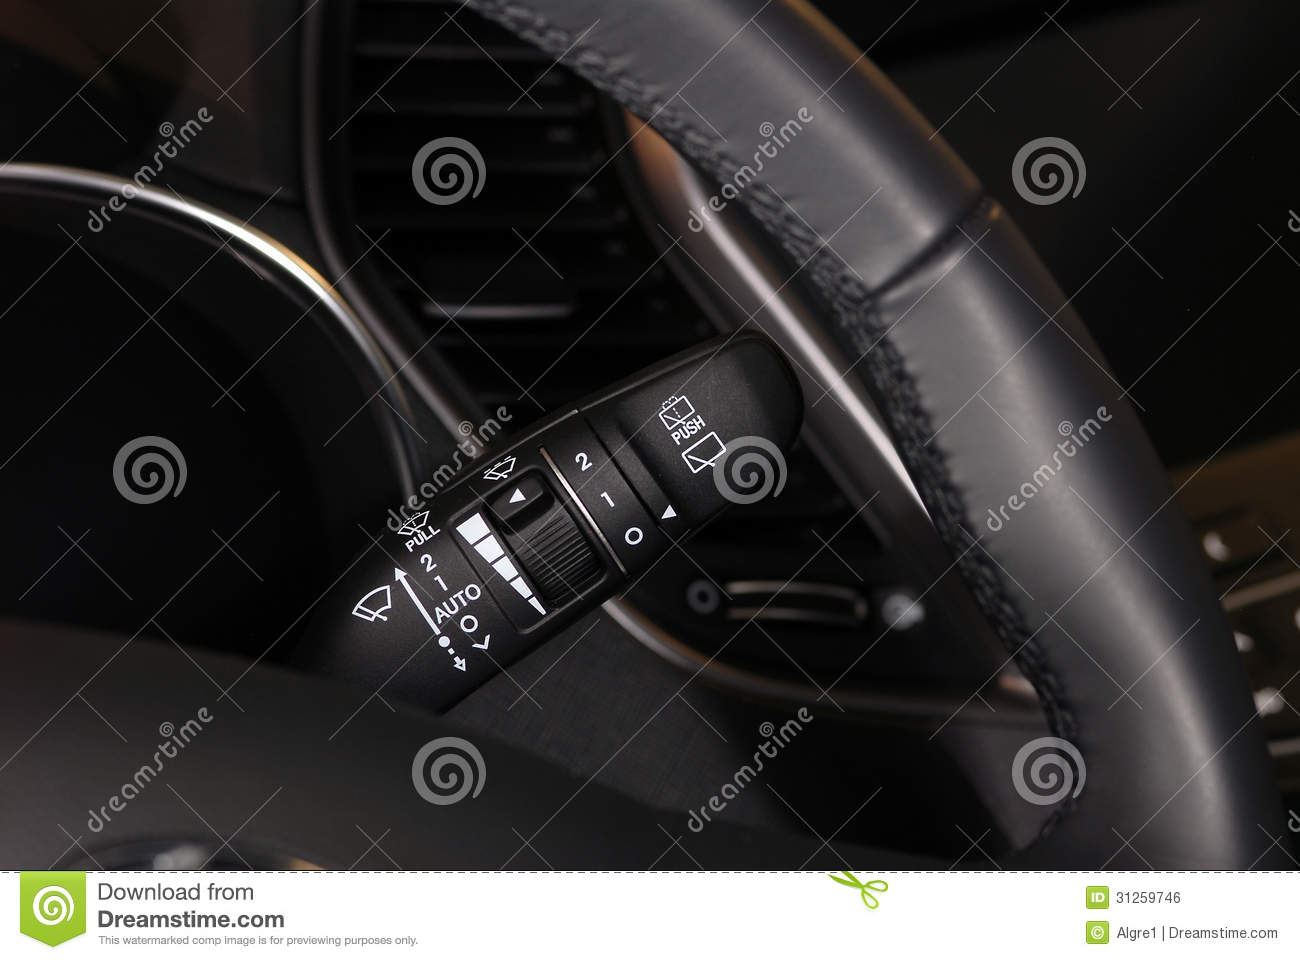 windshield wiper switch royalty free stock image image 31259746. Black Bedroom Furniture Sets. Home Design Ideas